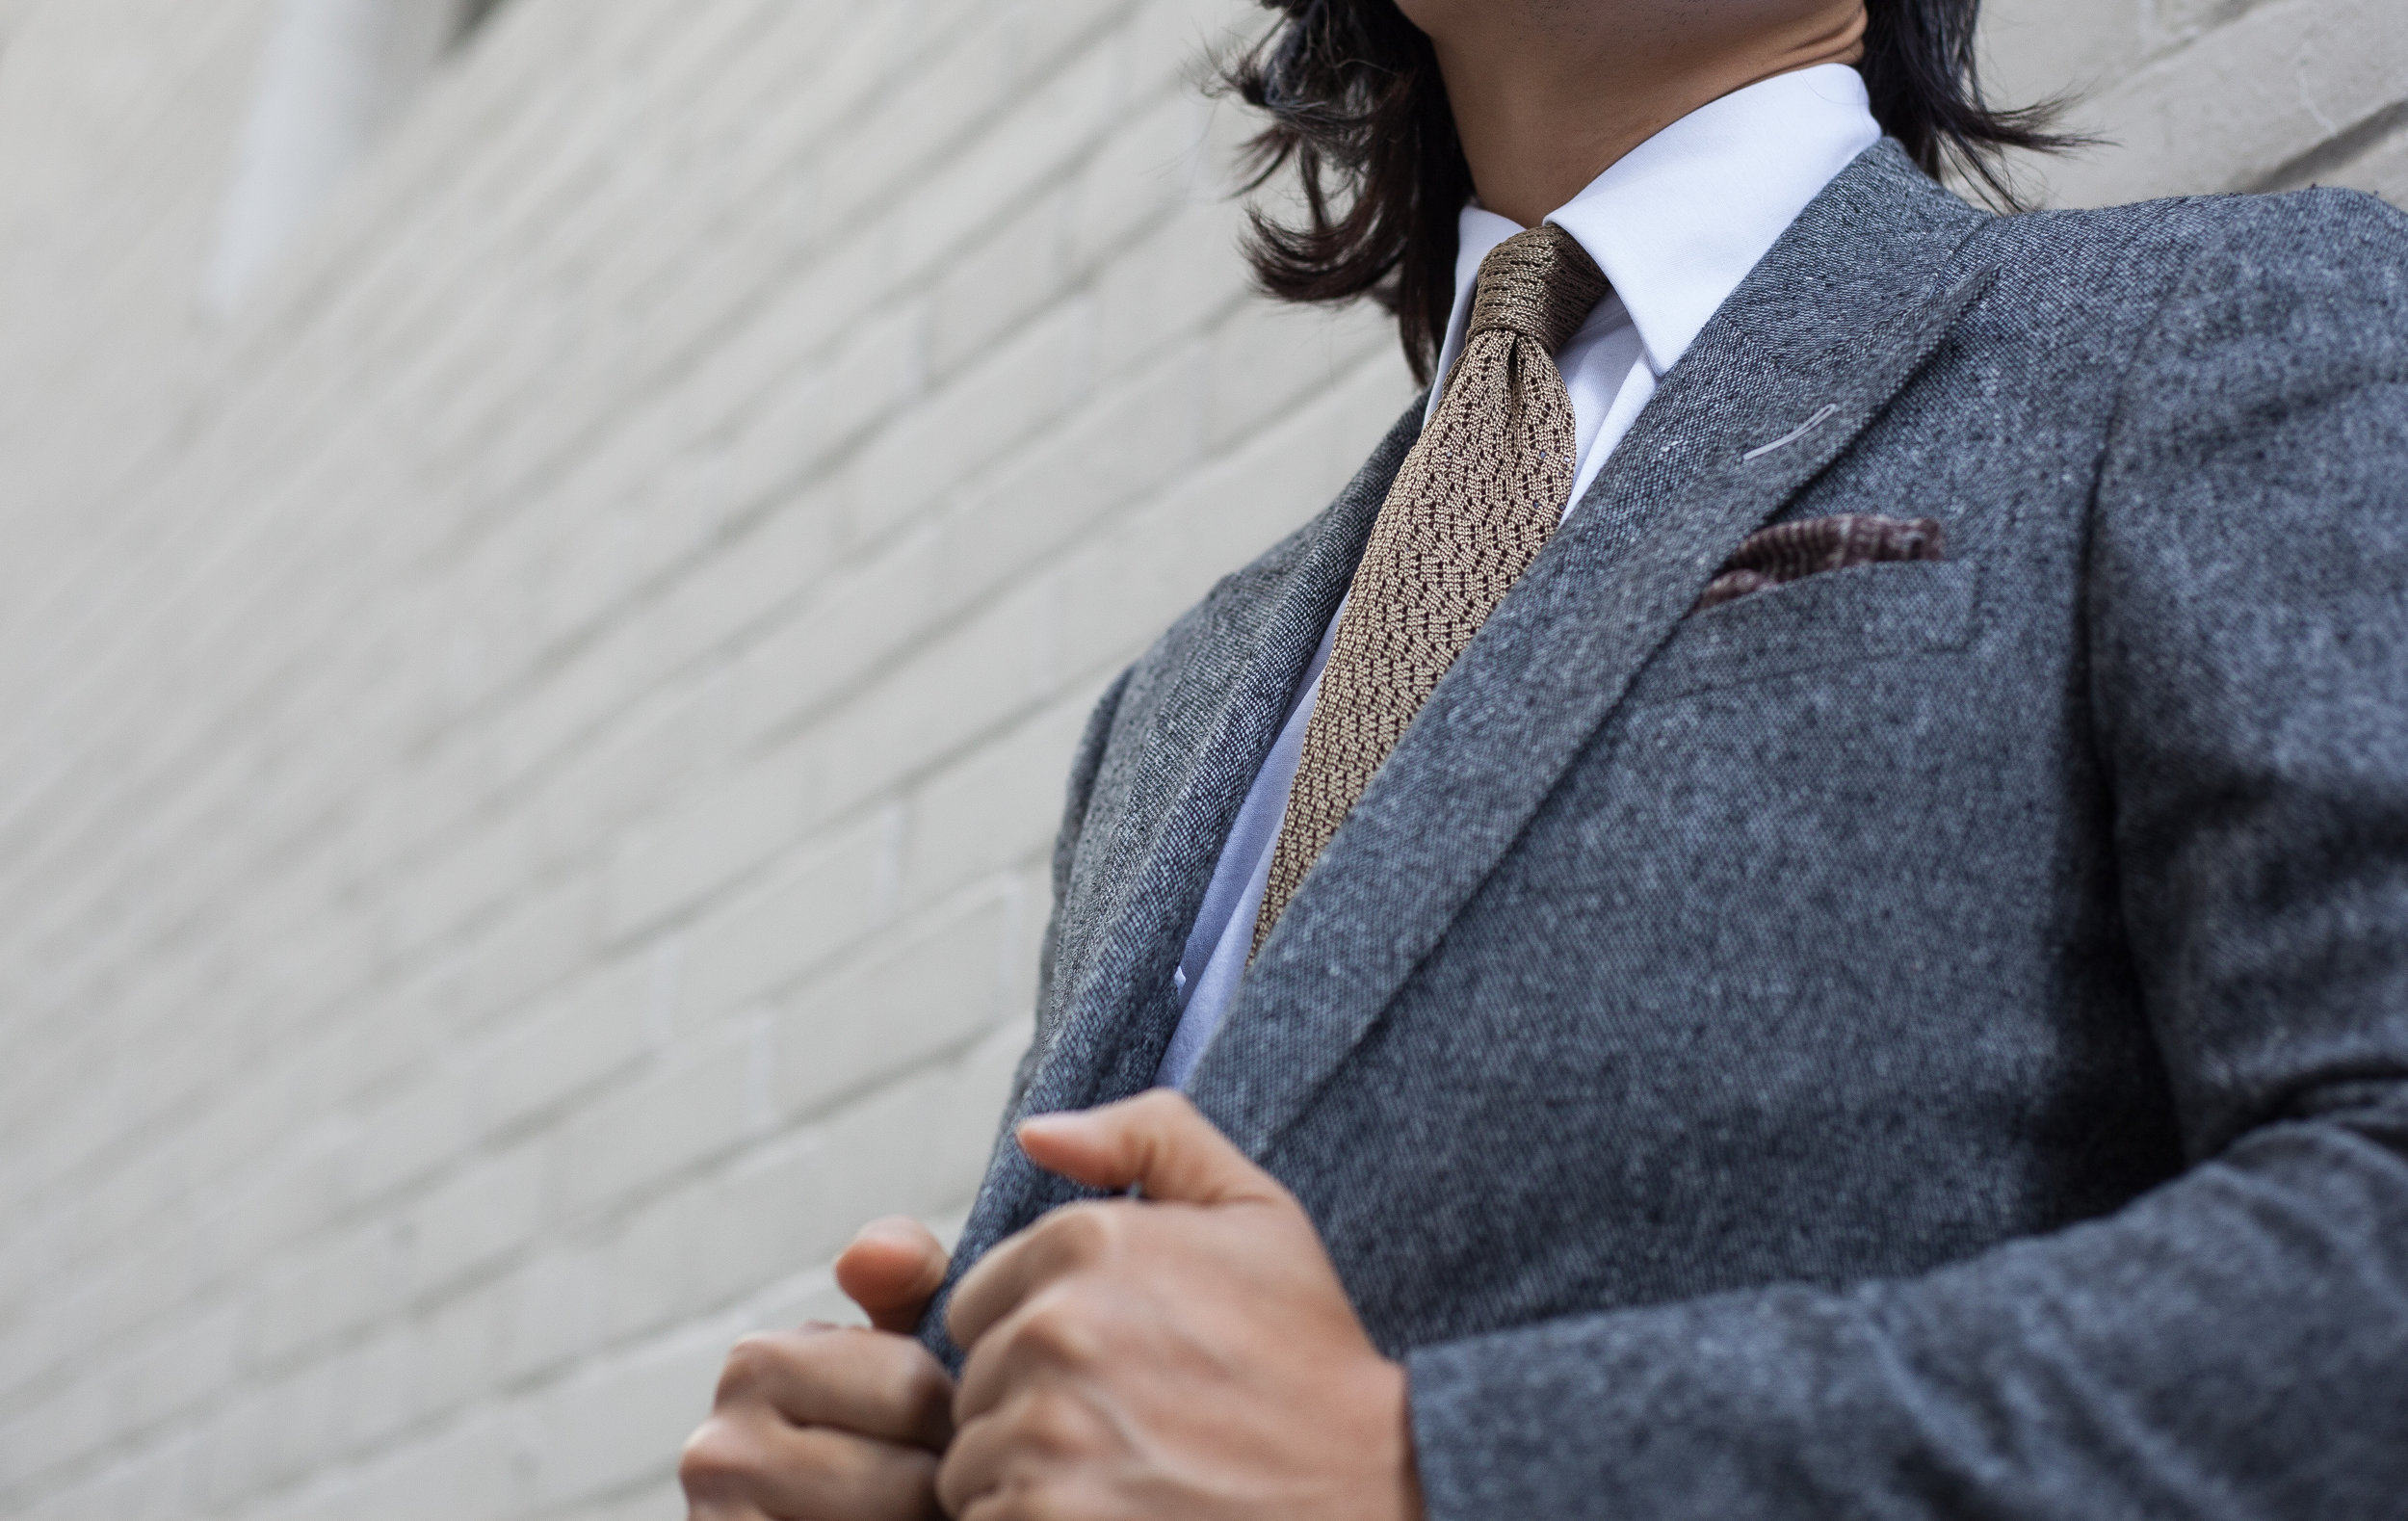 G  arrison Essentials Classic Como Knit tie in Sand - $95